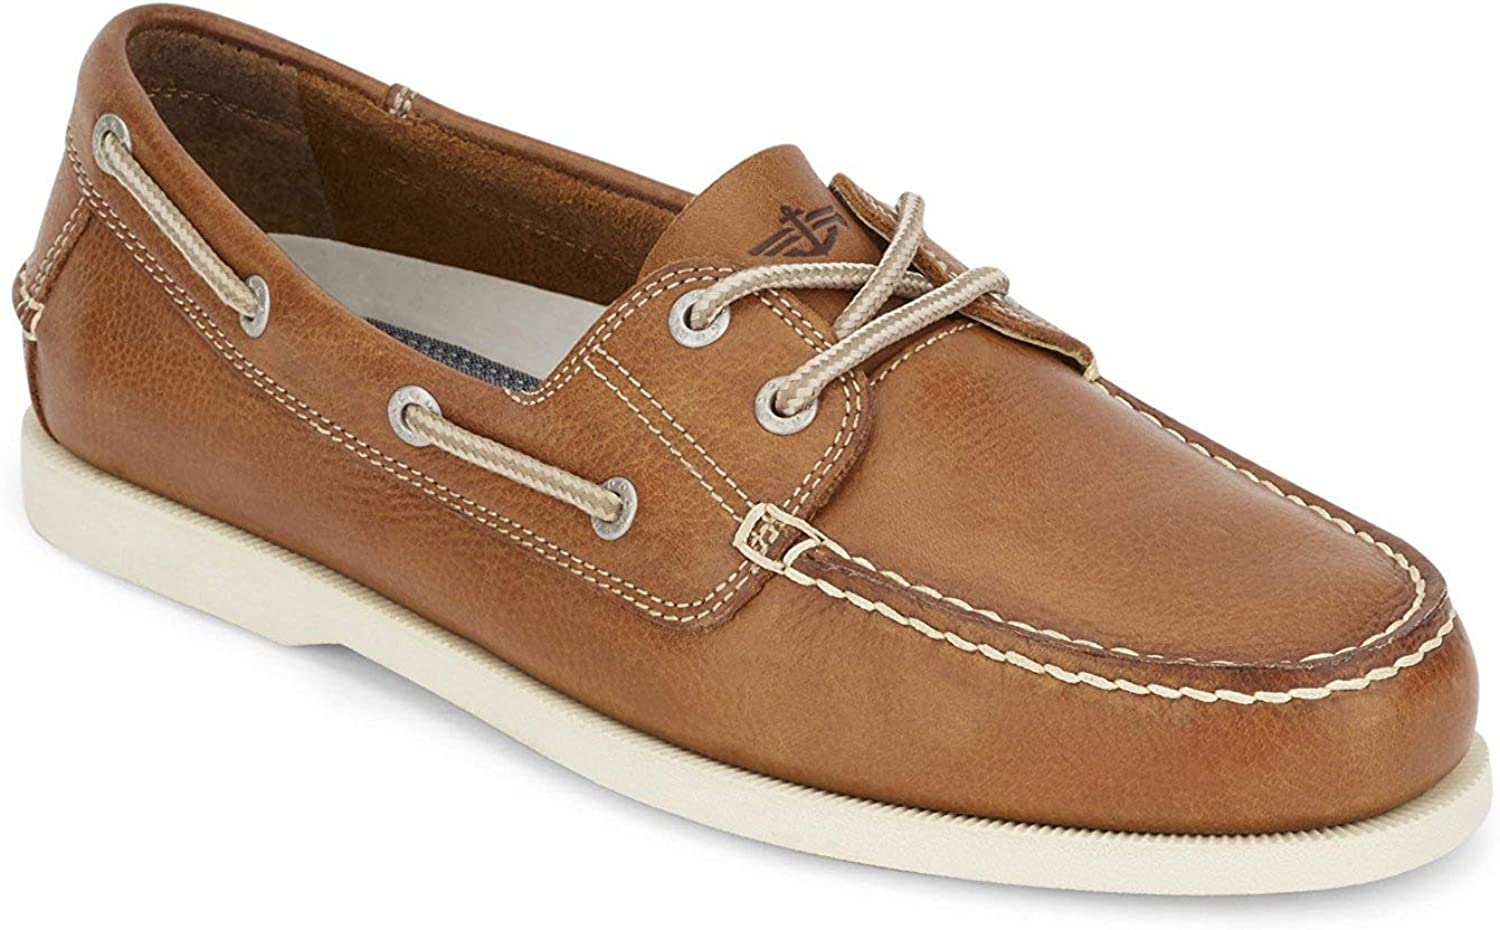 Dockers Men's Vargas Boat Shoe, Raisin,